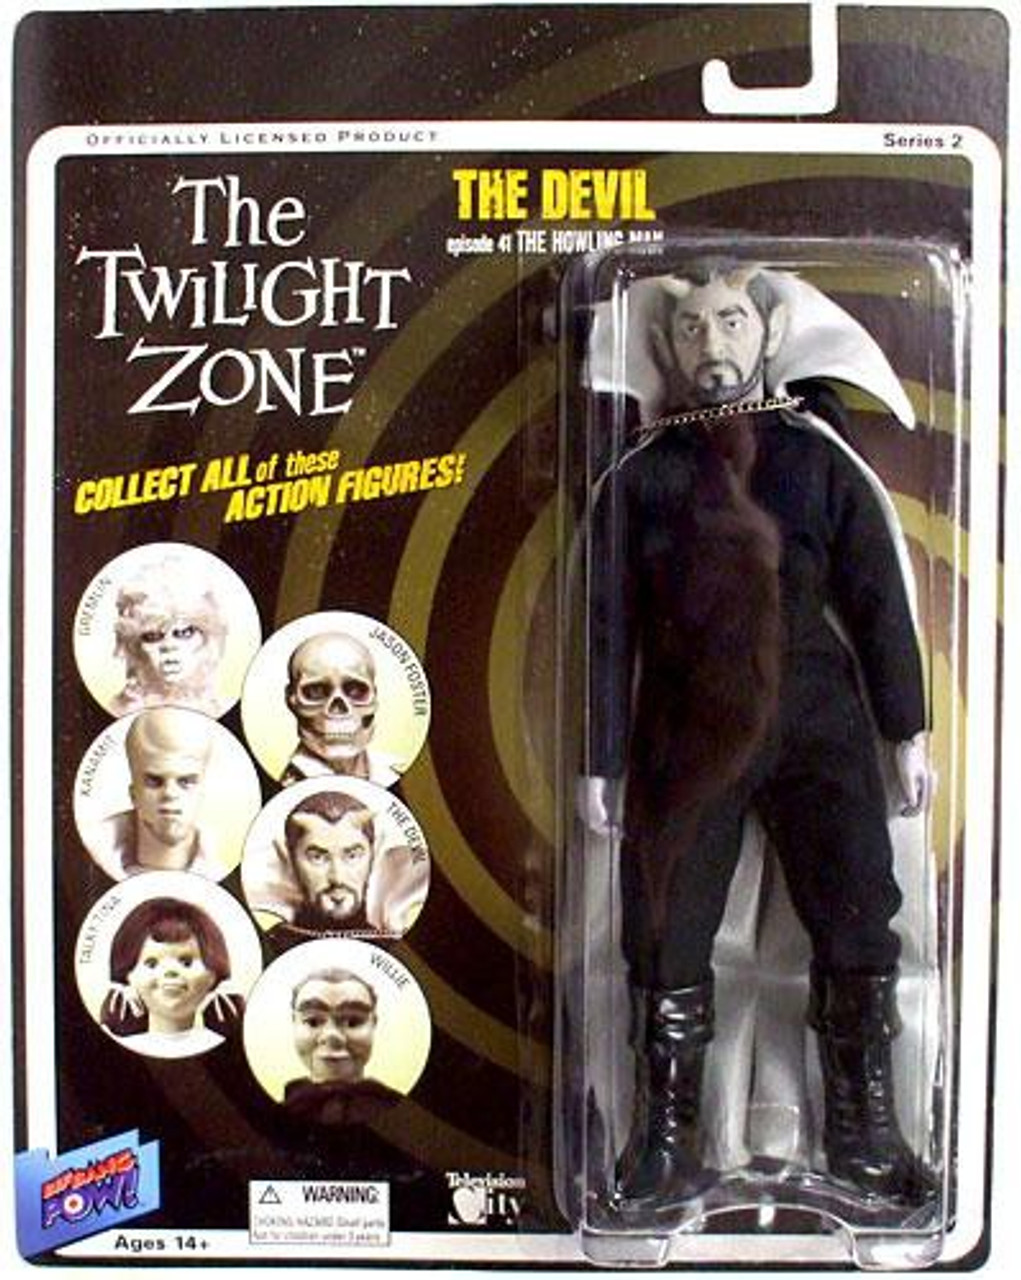 The Twilight Zone Series 2 The Devil Action Figure